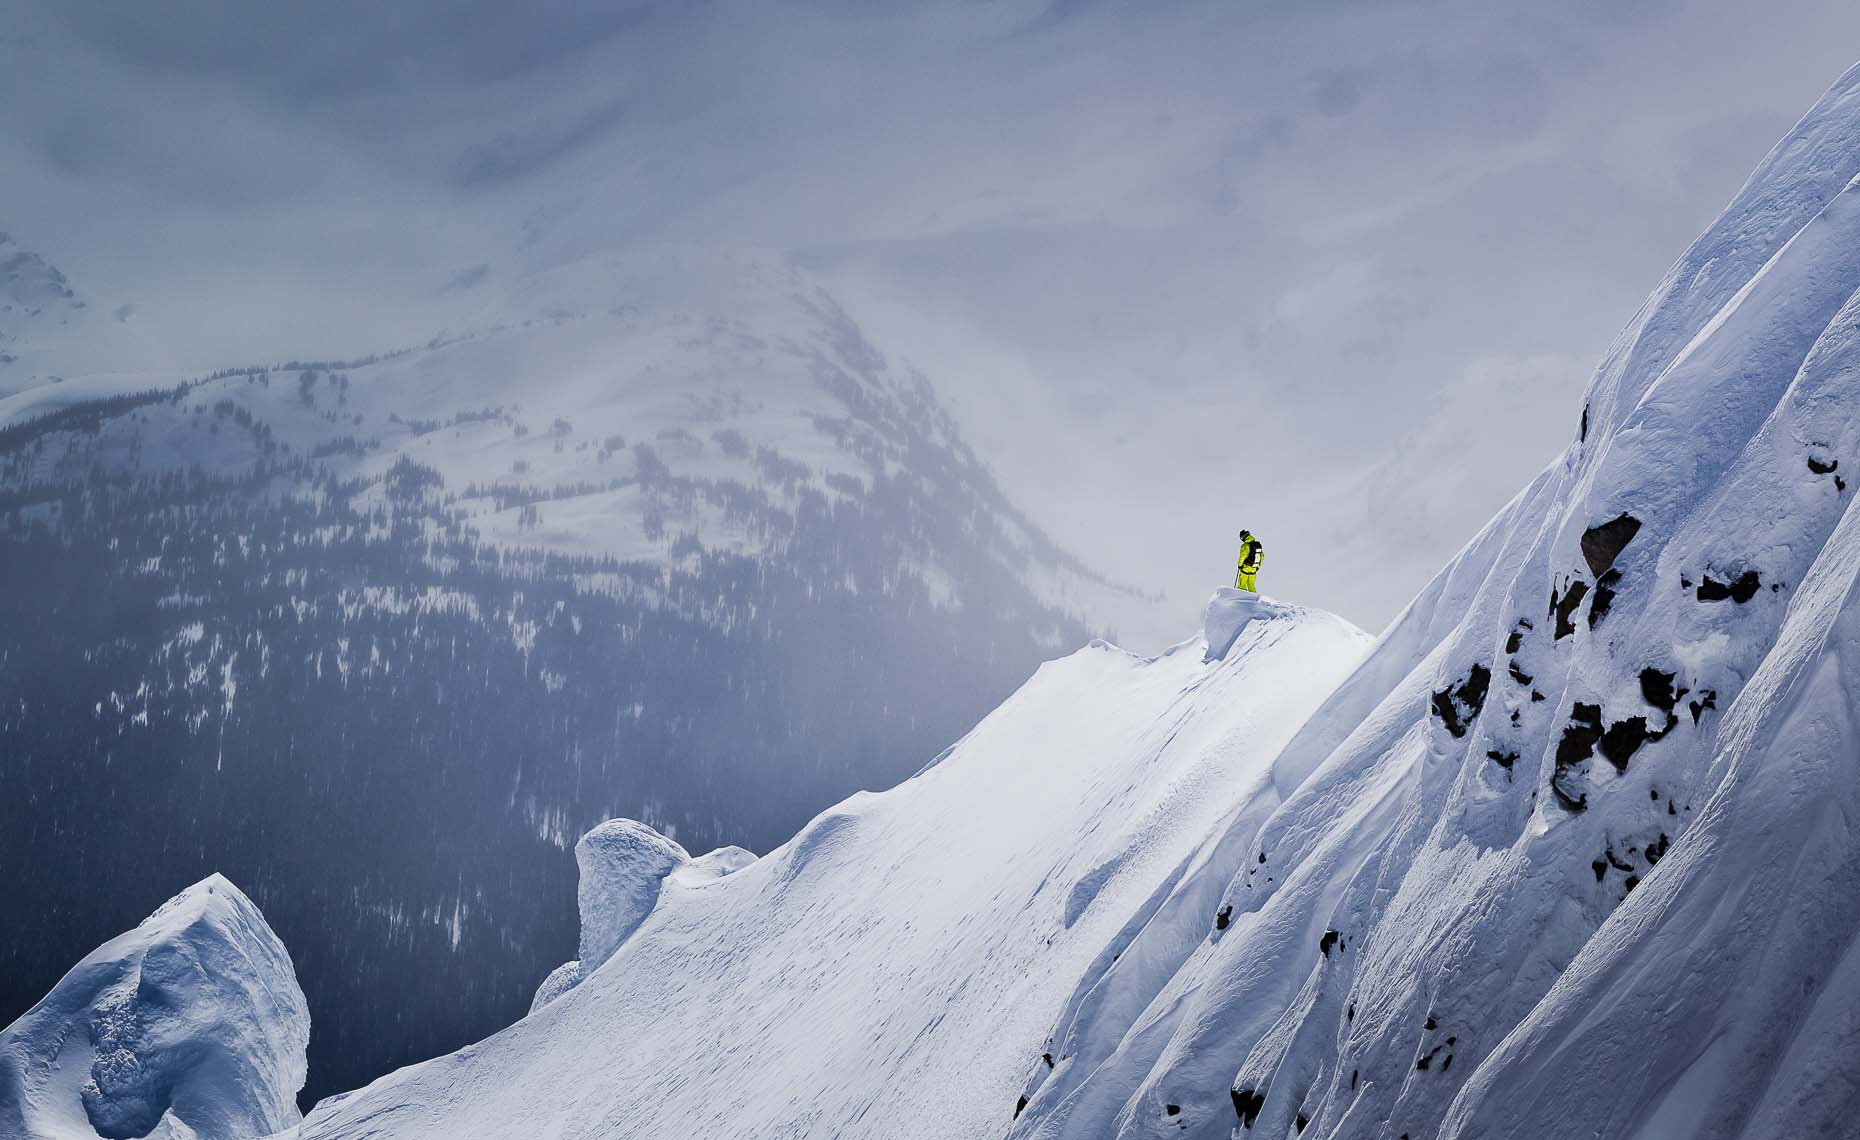 Heliskiing photographer in whistler documenting ski athletes.